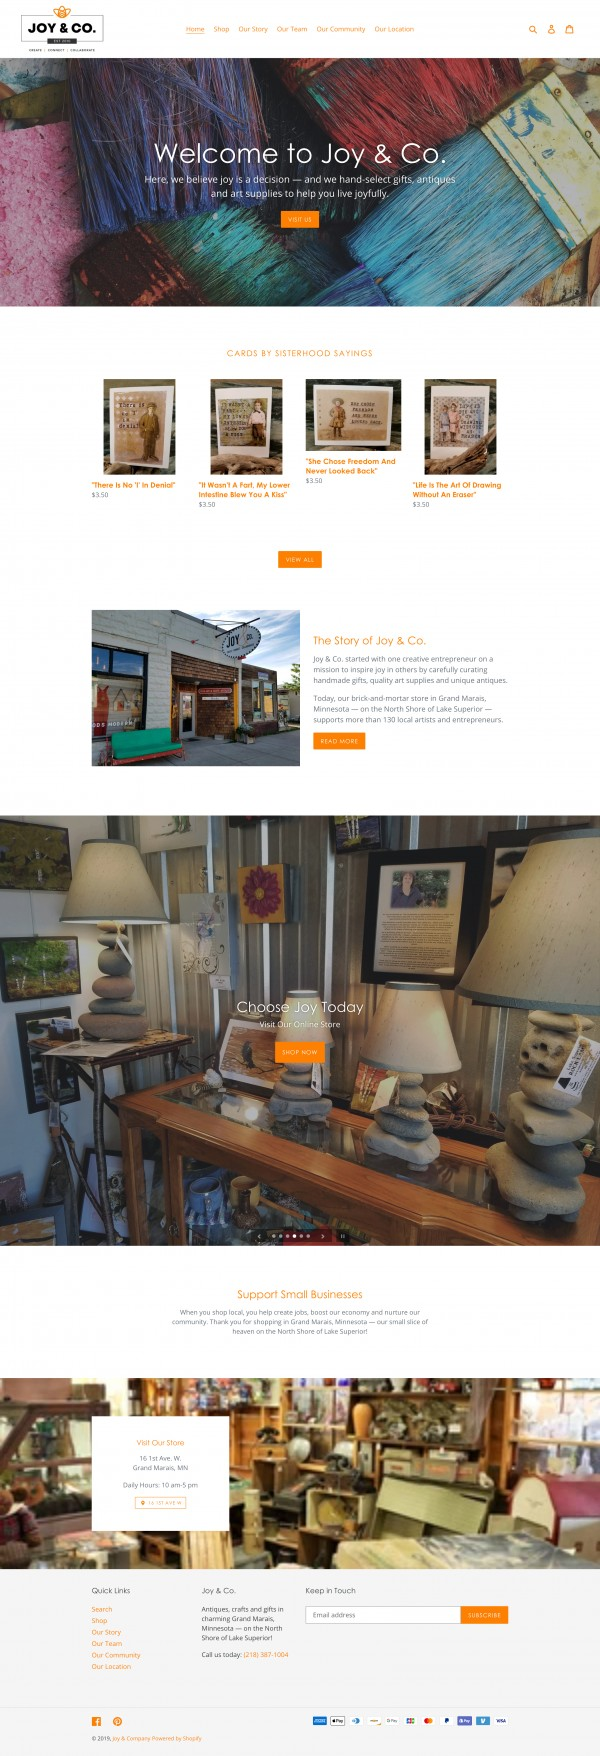 Picture of Joy & Co., Grand Marais MN Homepage